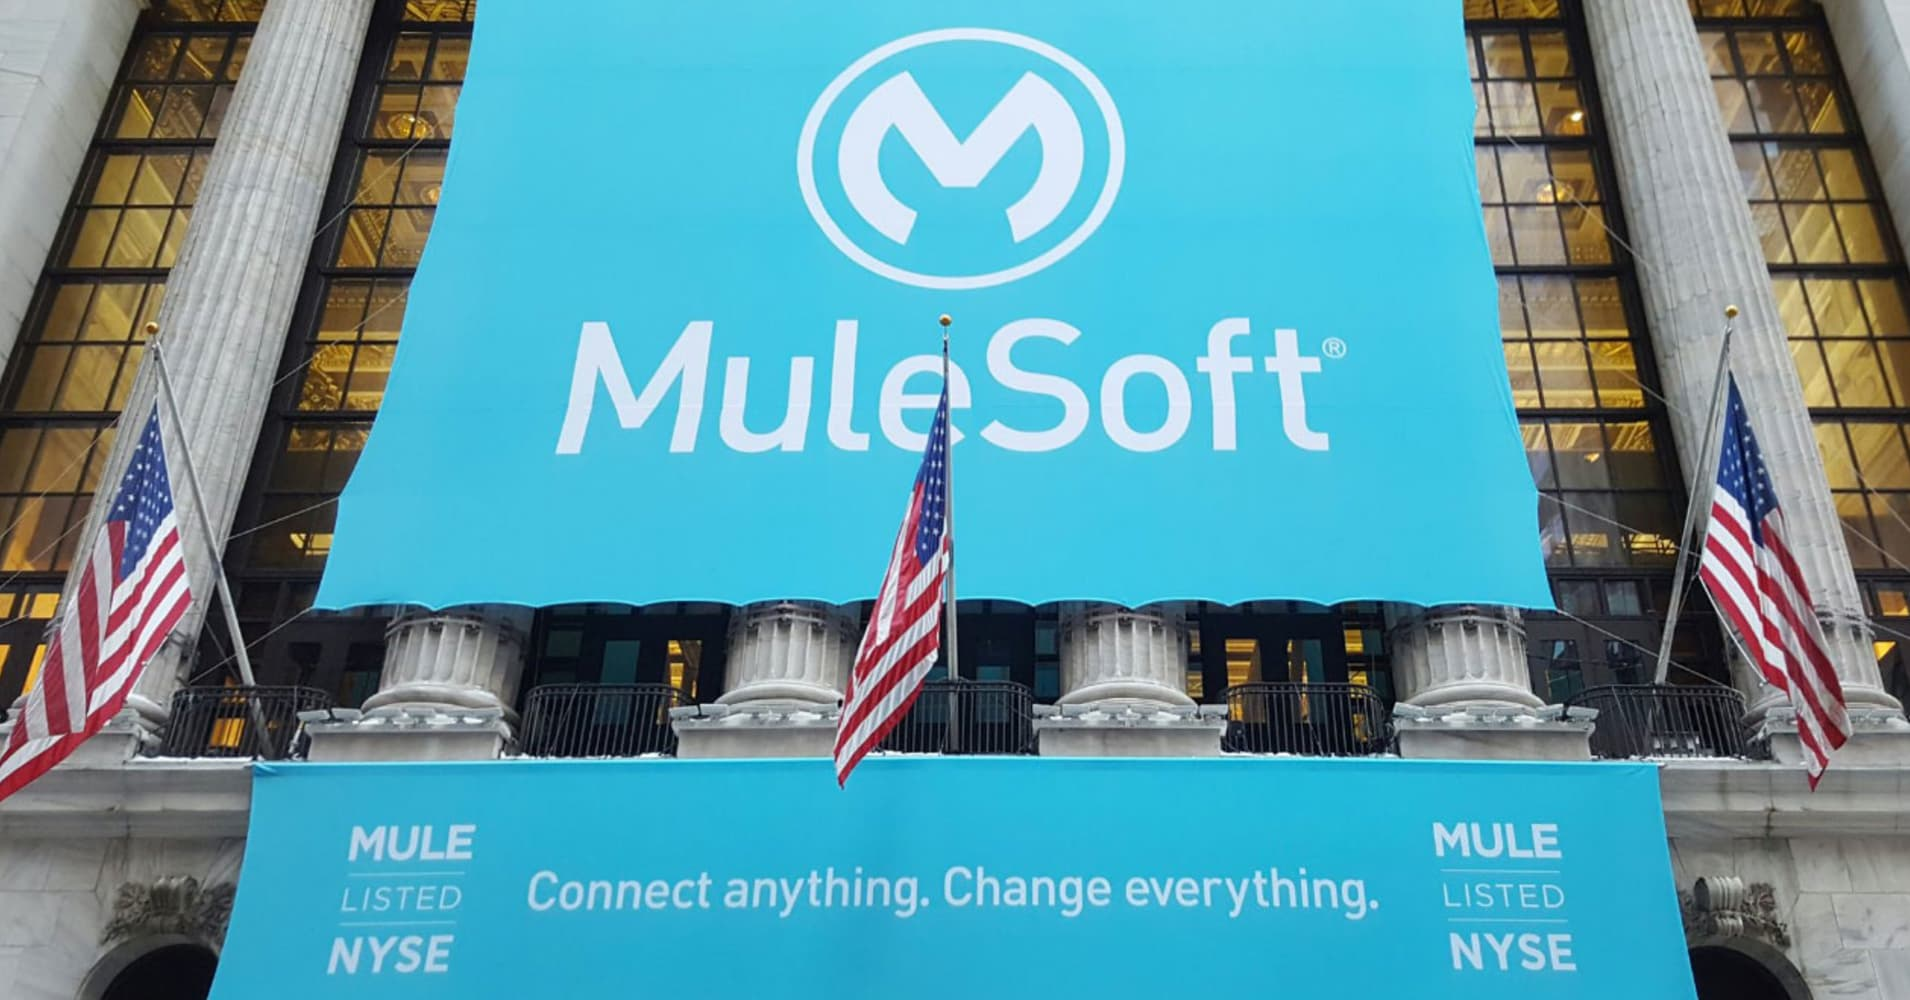 When did mulesoft ipo